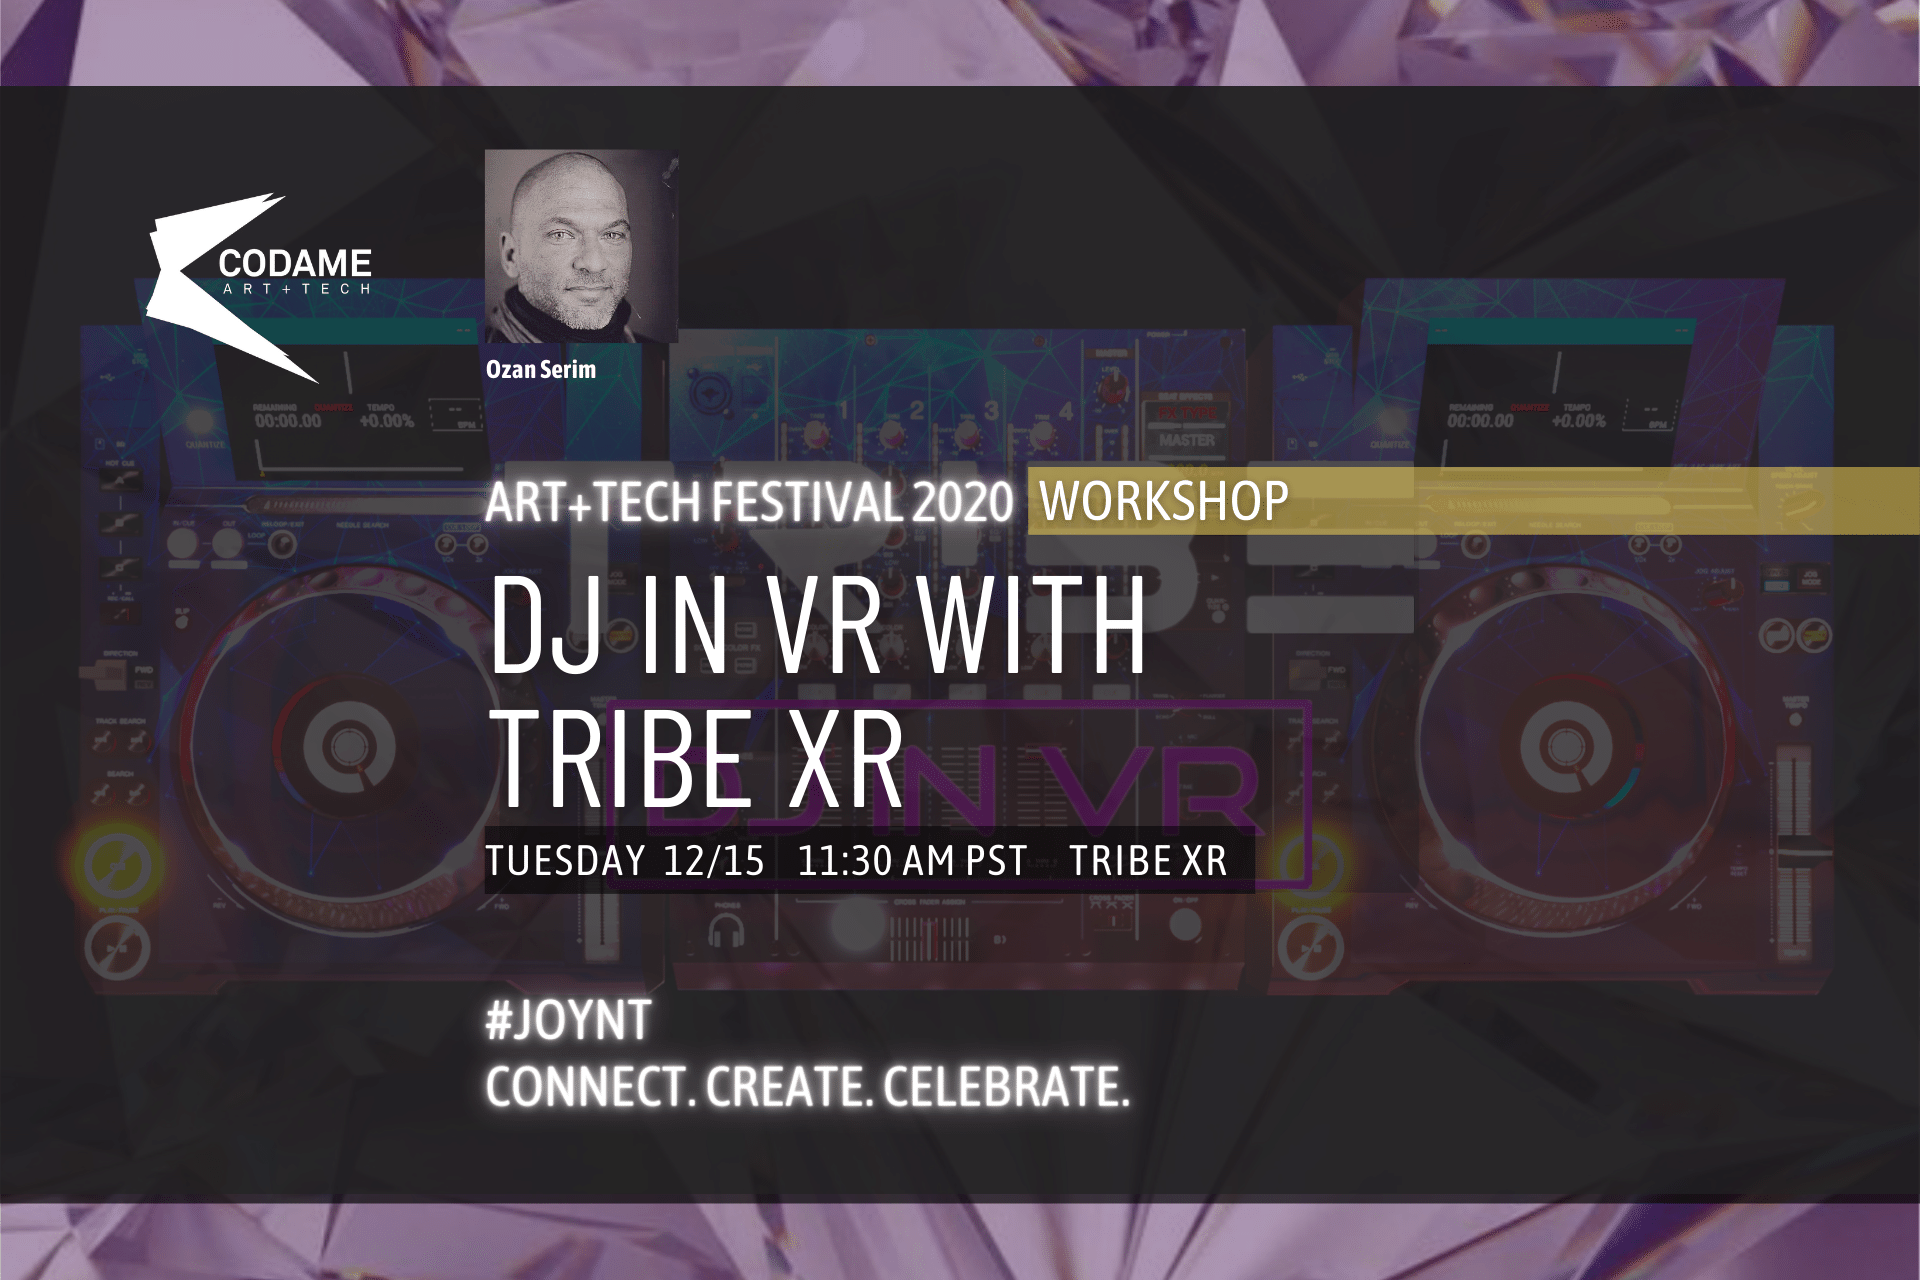 Learn to DJ in VR with Tribe XR